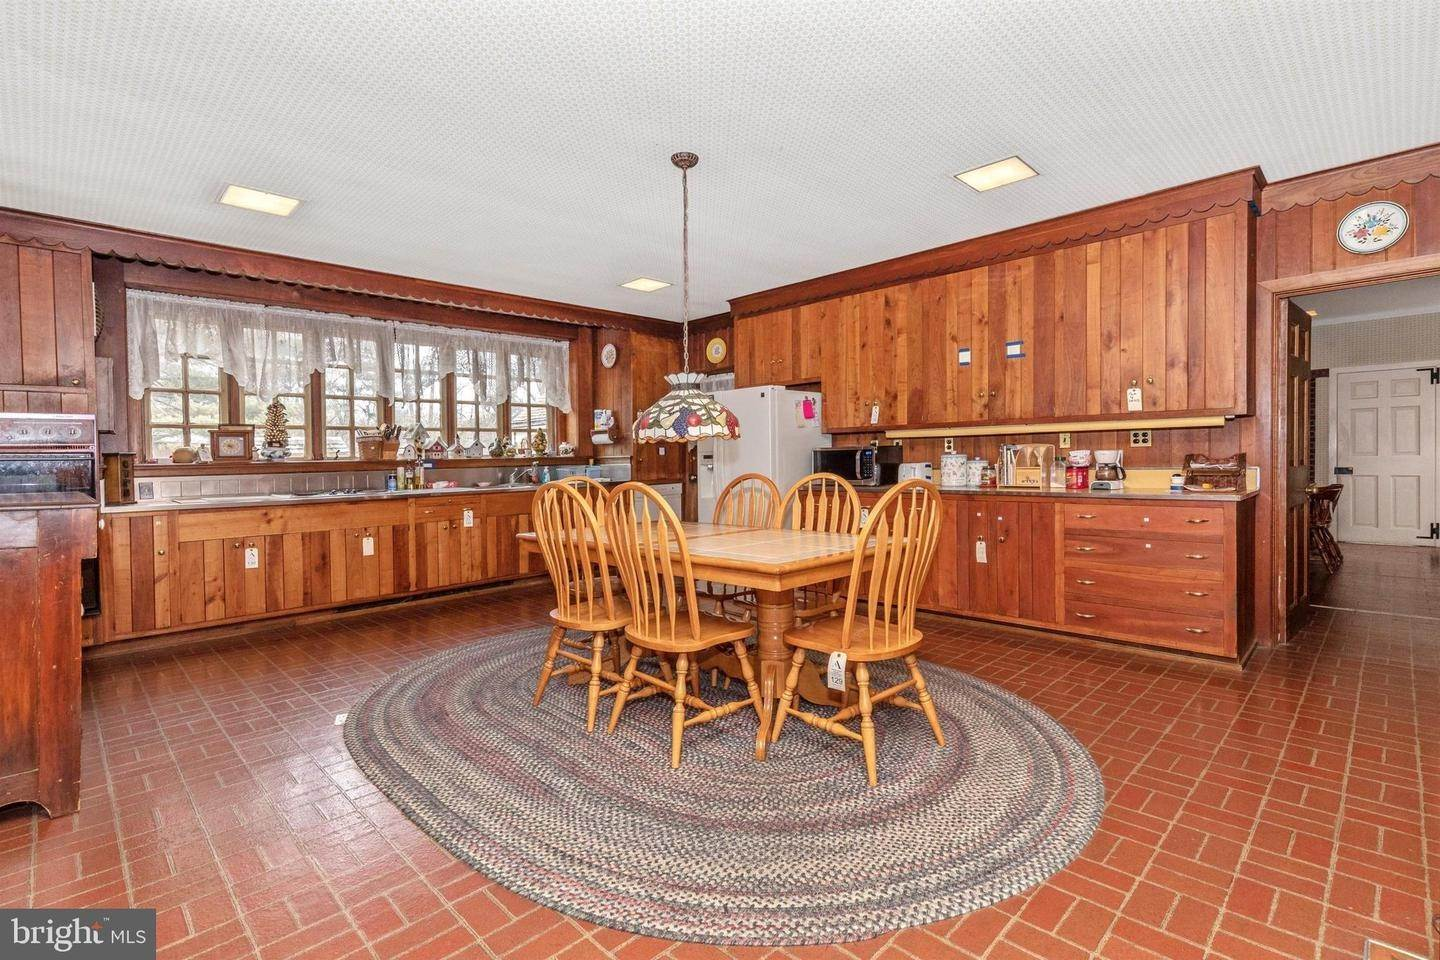 6. Detached House for Sale at 2576 BEAN ROAD Norristown, Pennsylvania 19403 United States